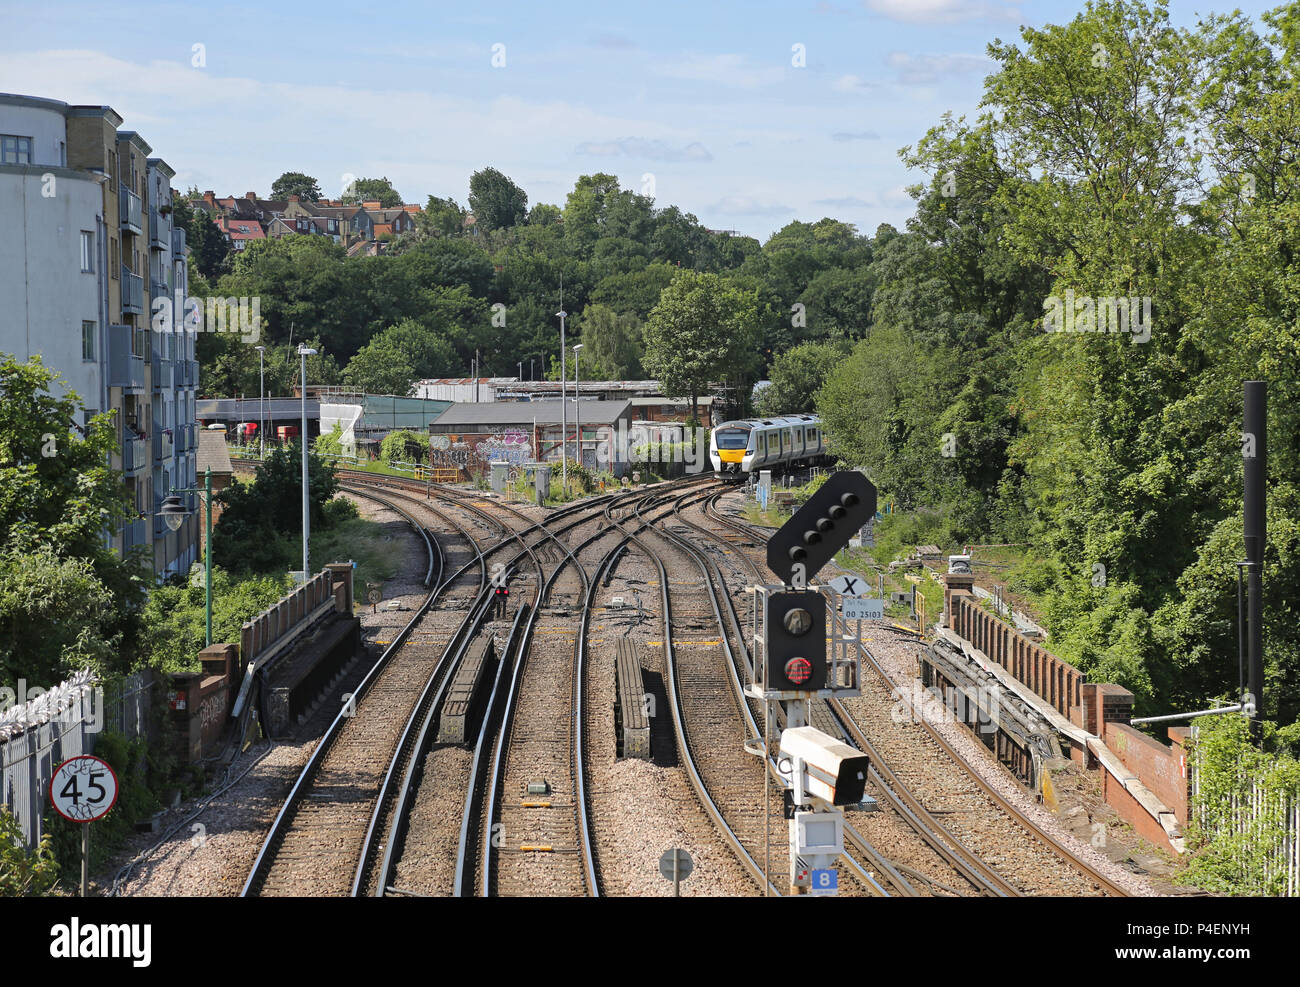 Railway junction west of Tulse Hill Station in south London, UK. Part of the suburban rail network. Shows a new Thameslink train approaching. - Stock Image